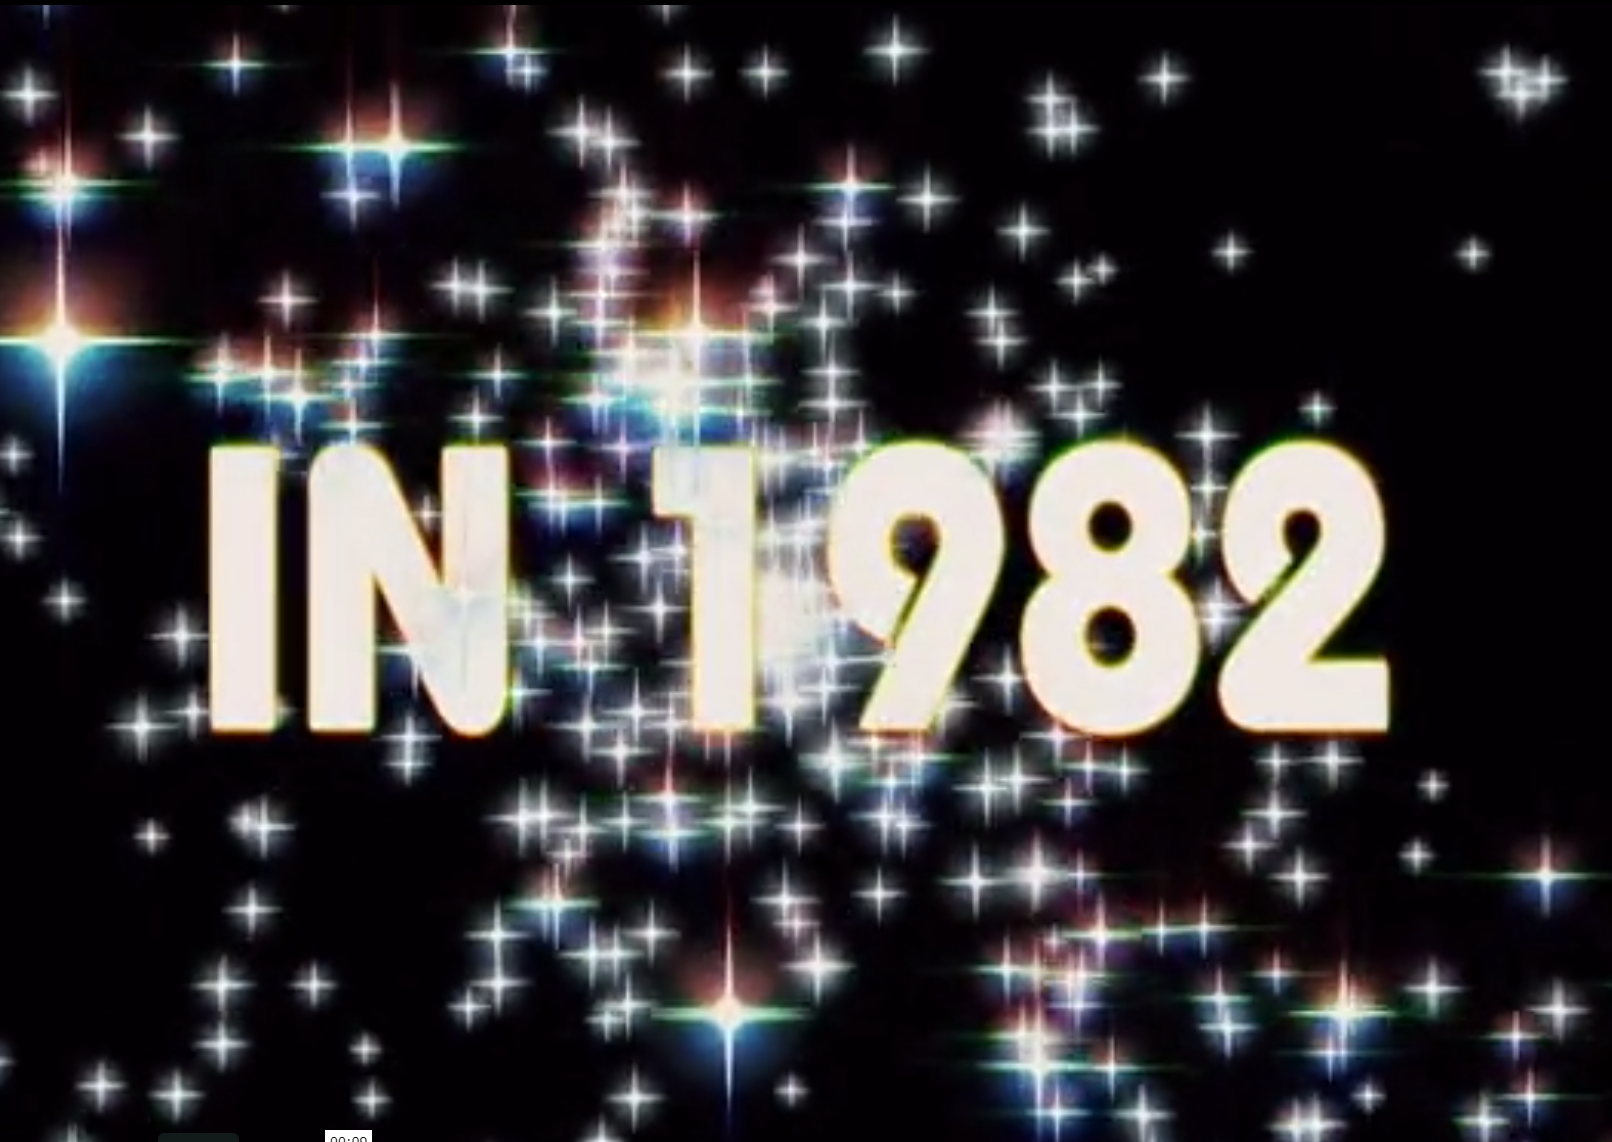 In 1982.PNG